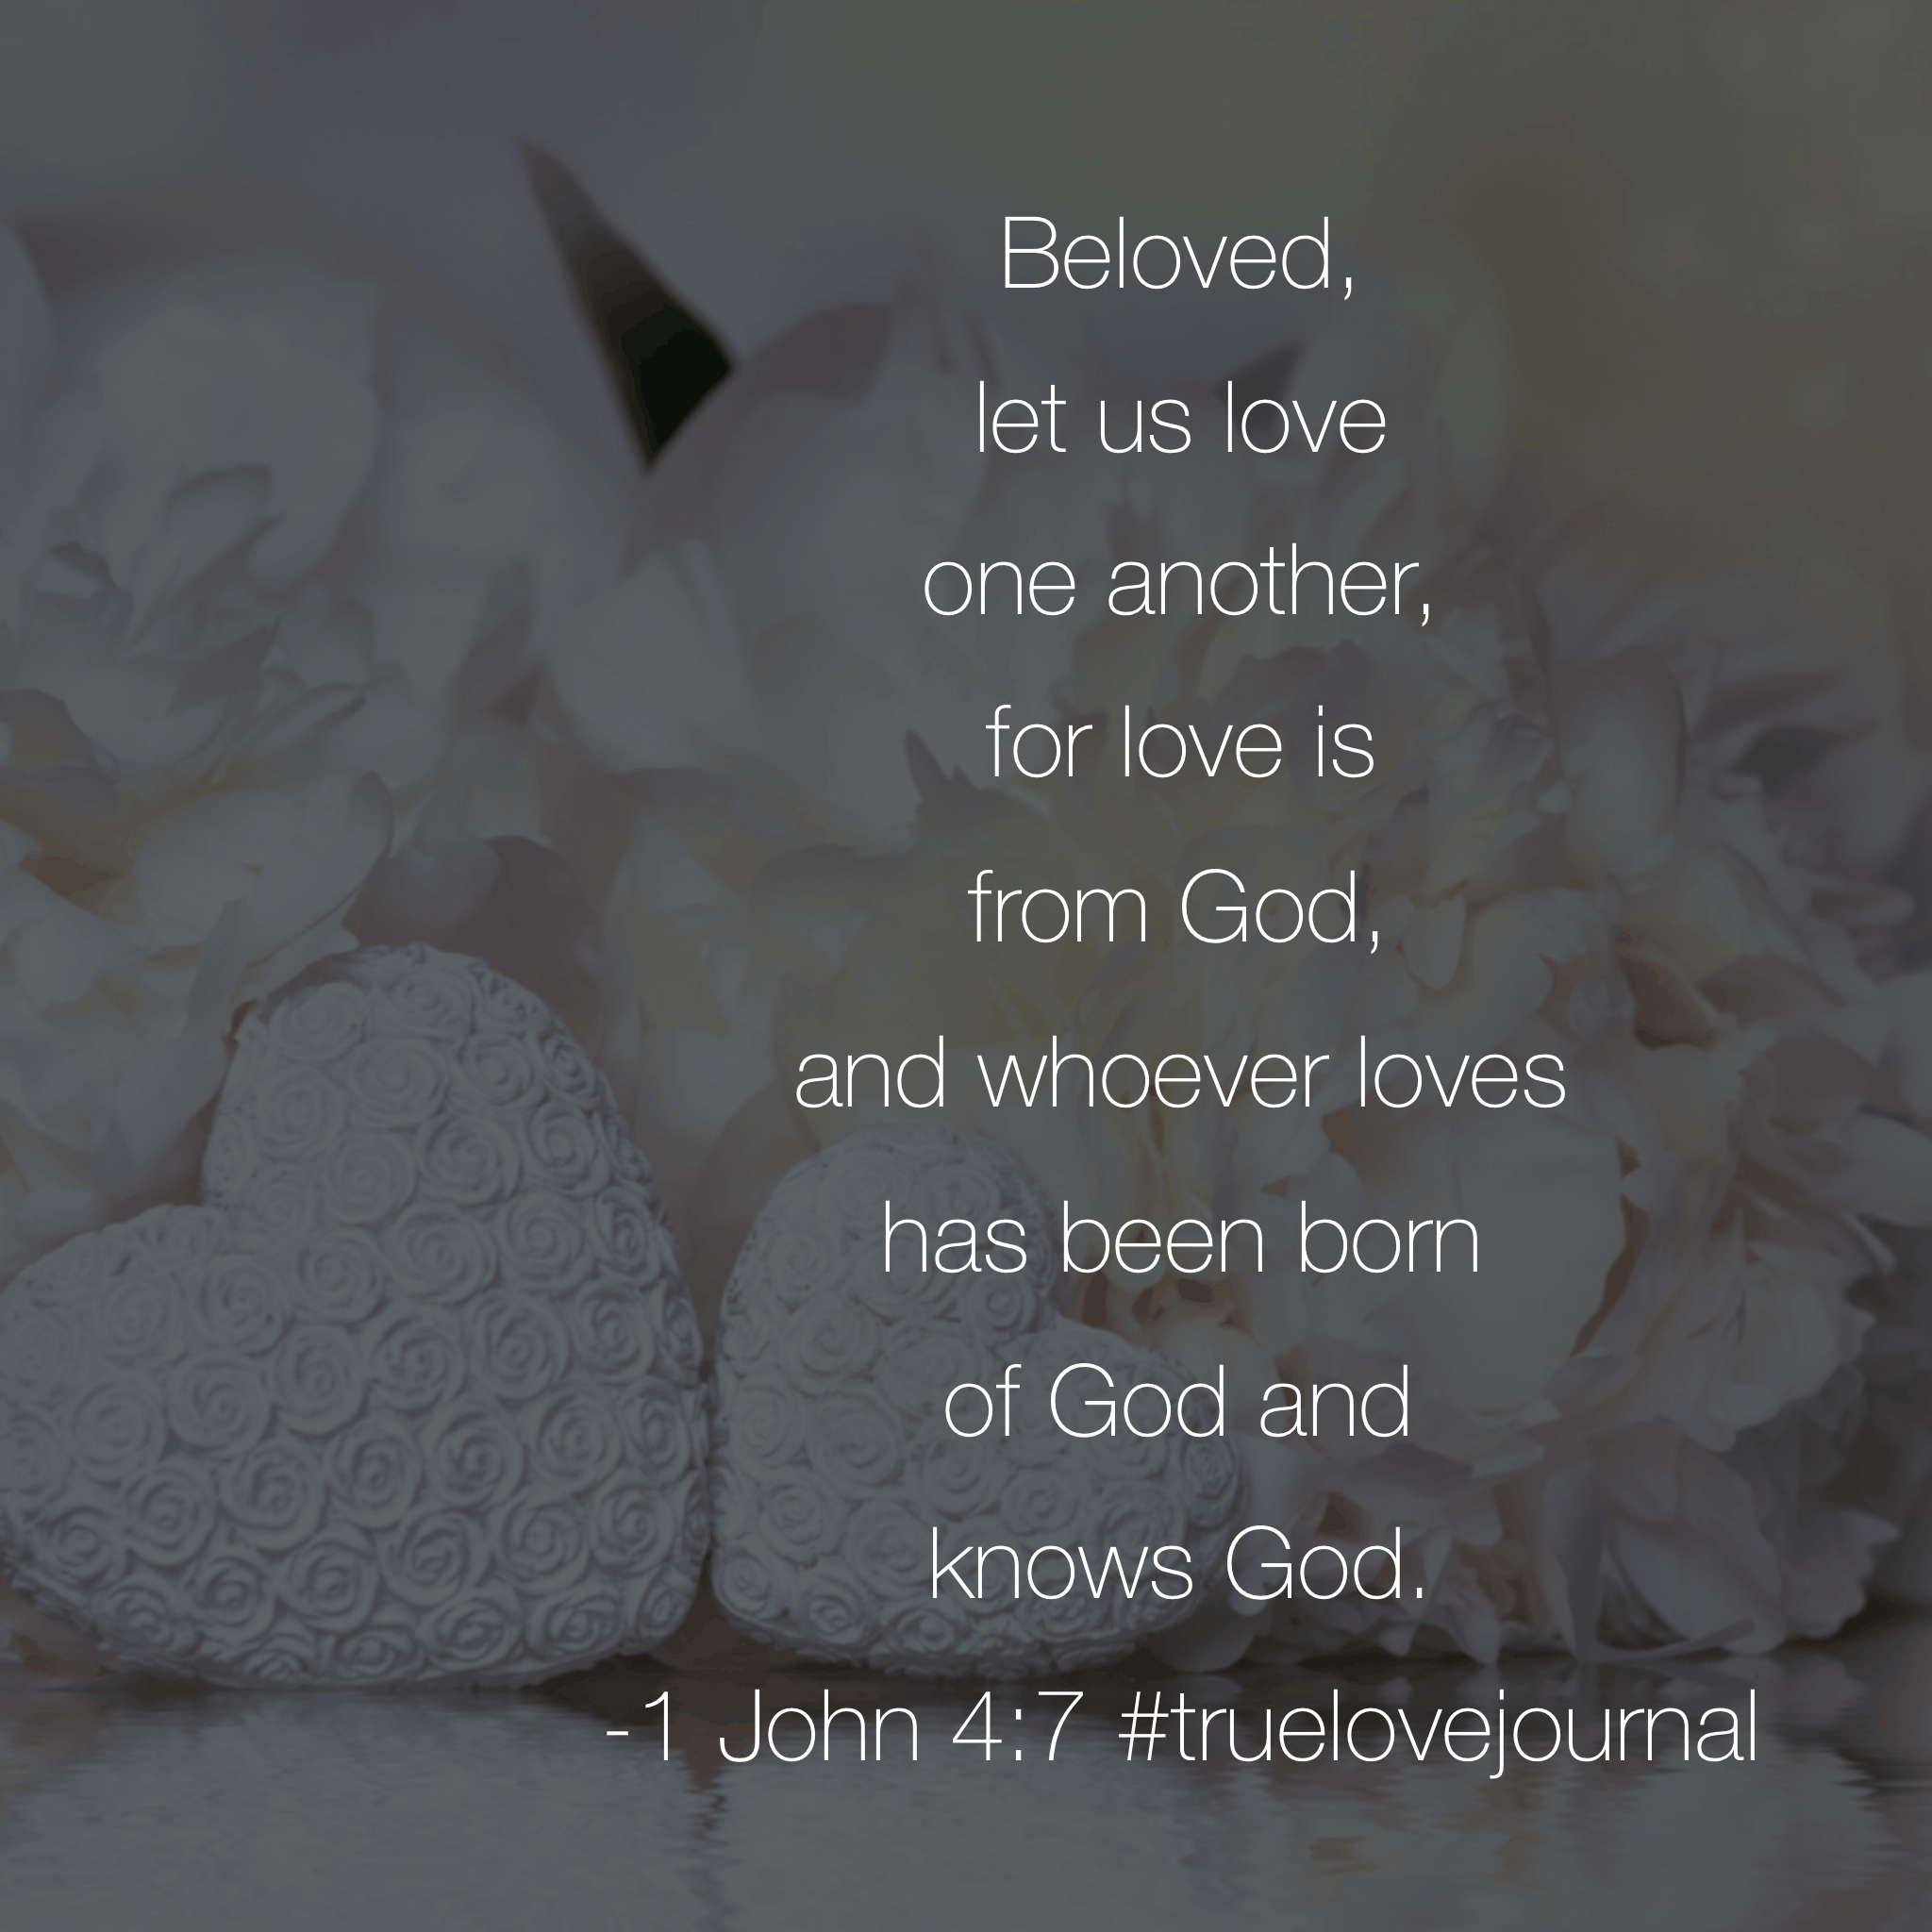 It's Tuesday. What could happen if we chose to live out the love God has placed in us? If we loved others with the same love that has been lavished on us? That kind of love has been placed in our hearts by the Father! Love out loud today! #biblereadingplan